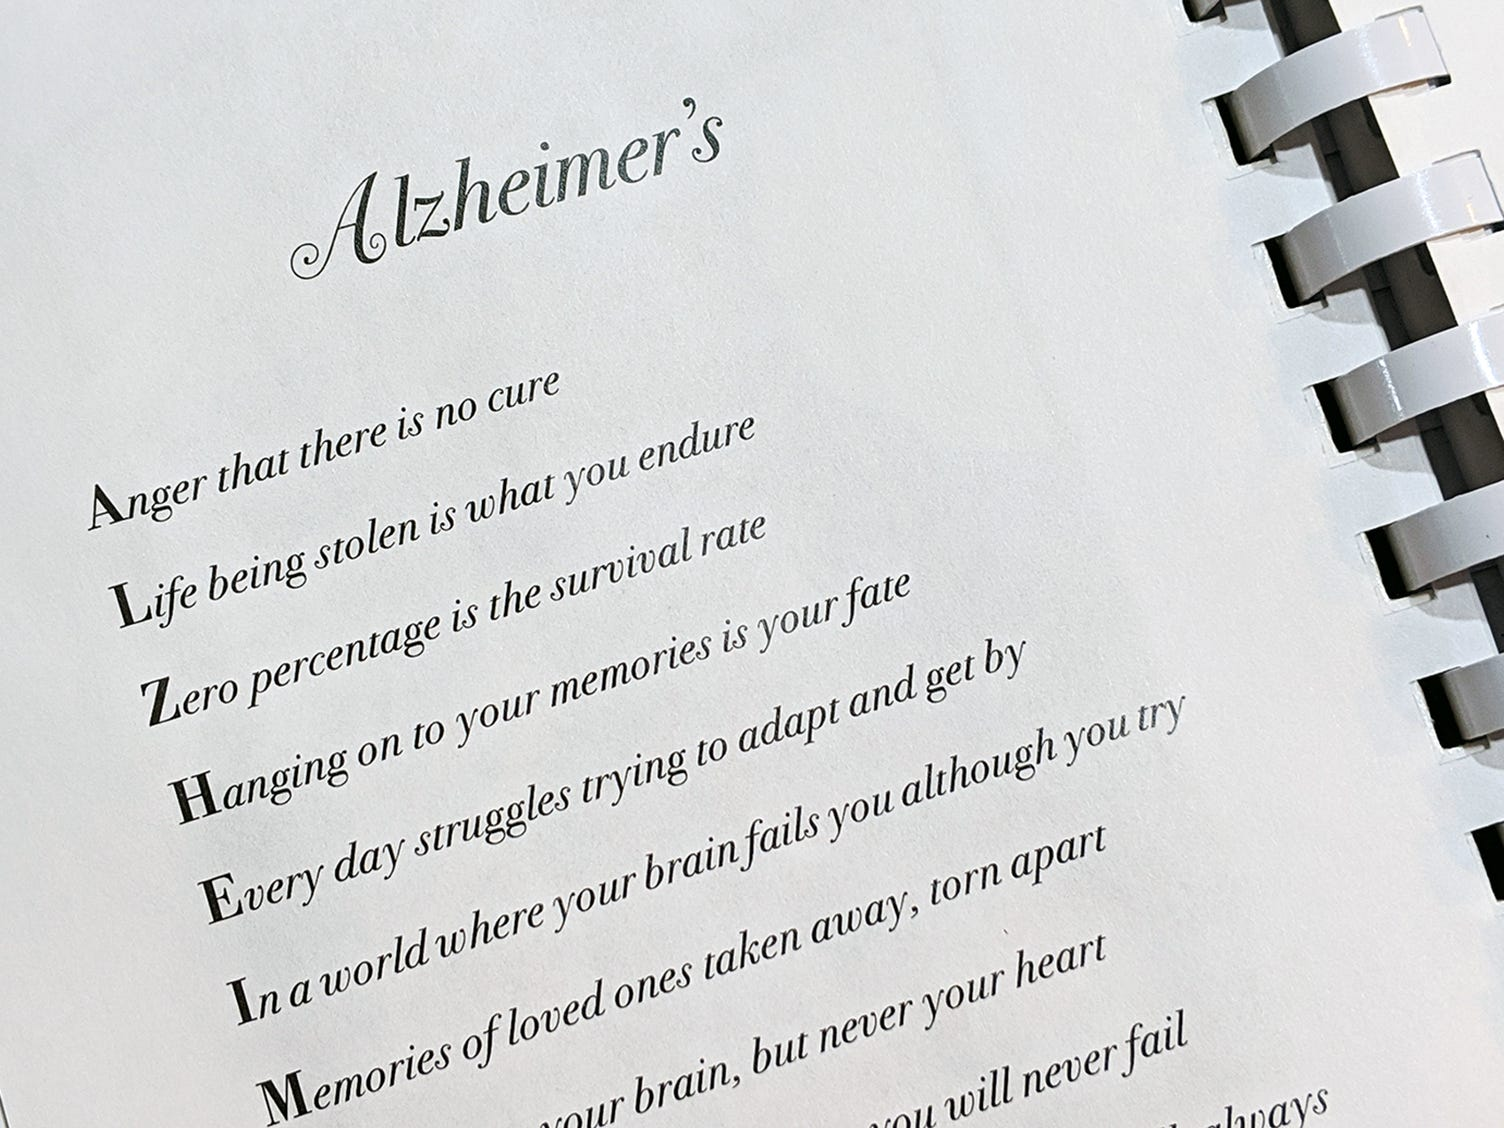 A poem about Alzheimer's is featured in the cookbook. Proceeds from the cookbook benefit Alzheimer's research.